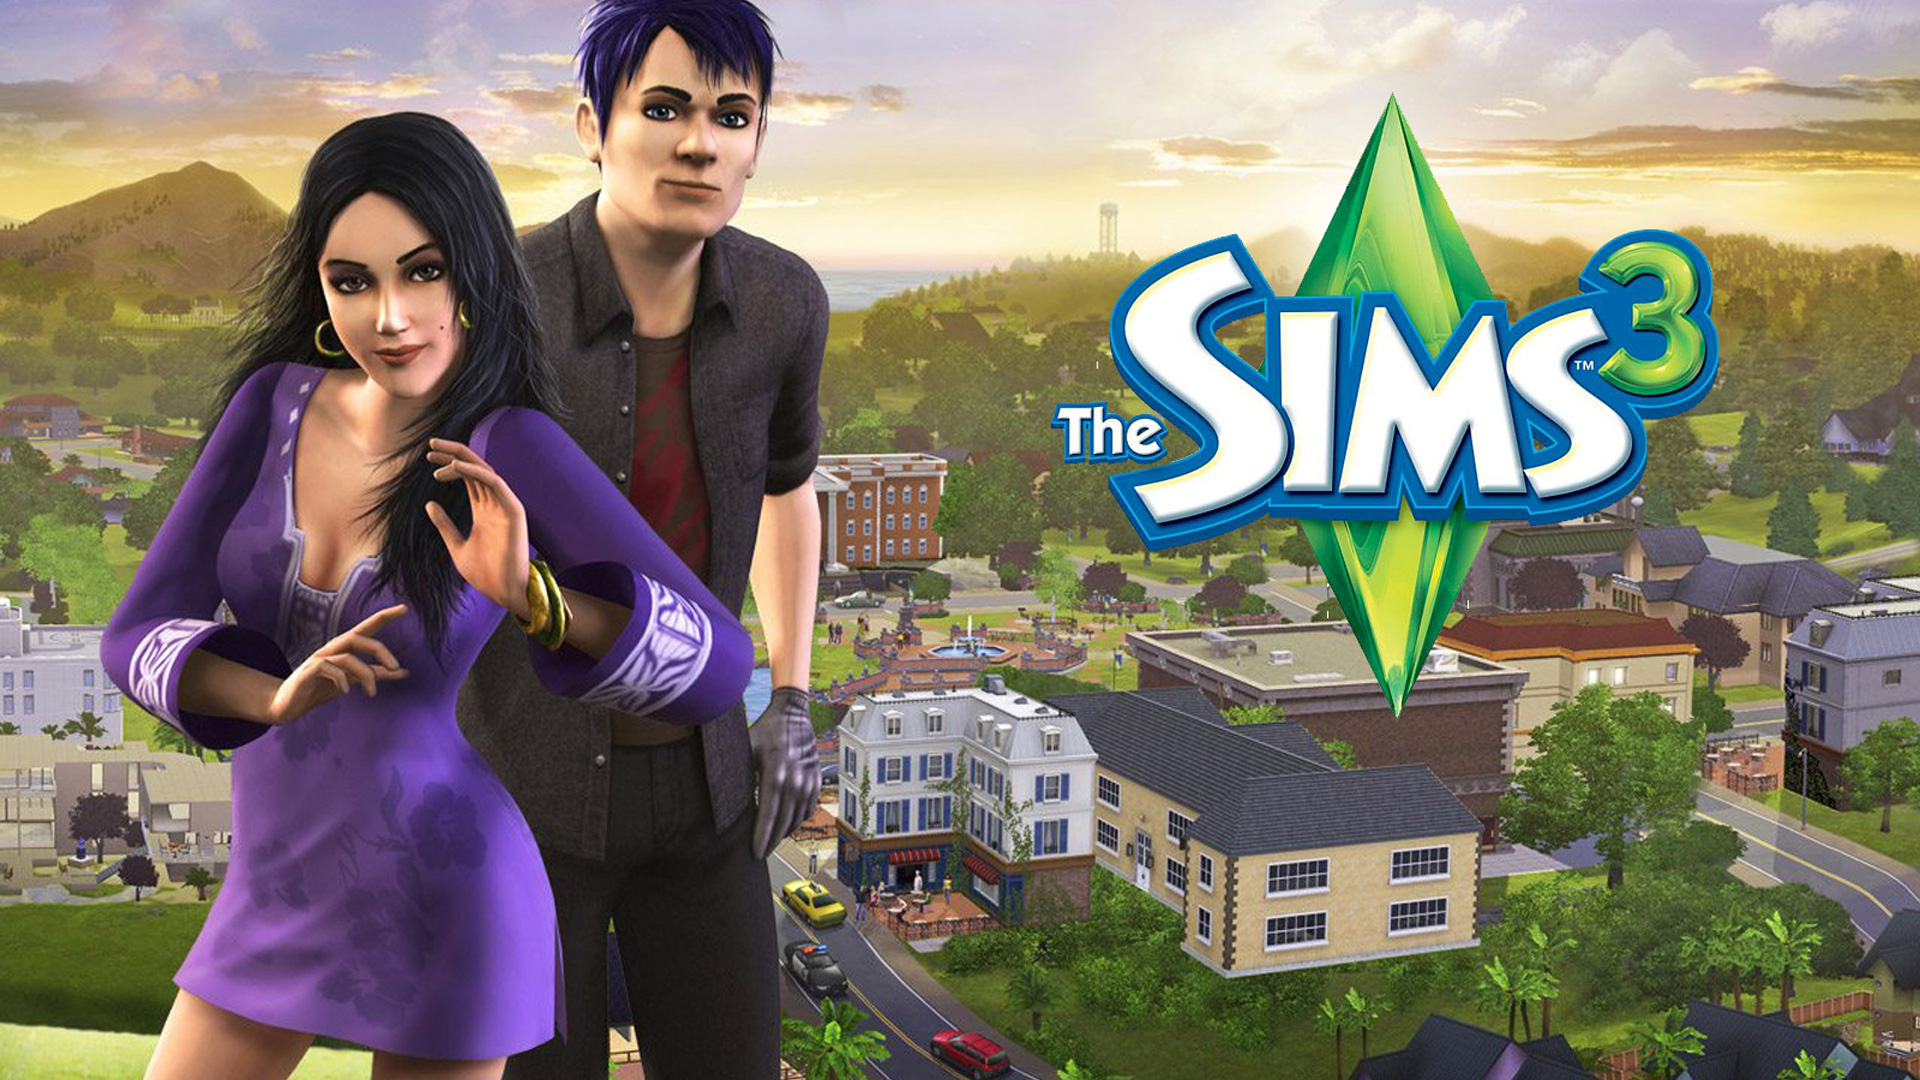 The Sims 3 wallpaper 1